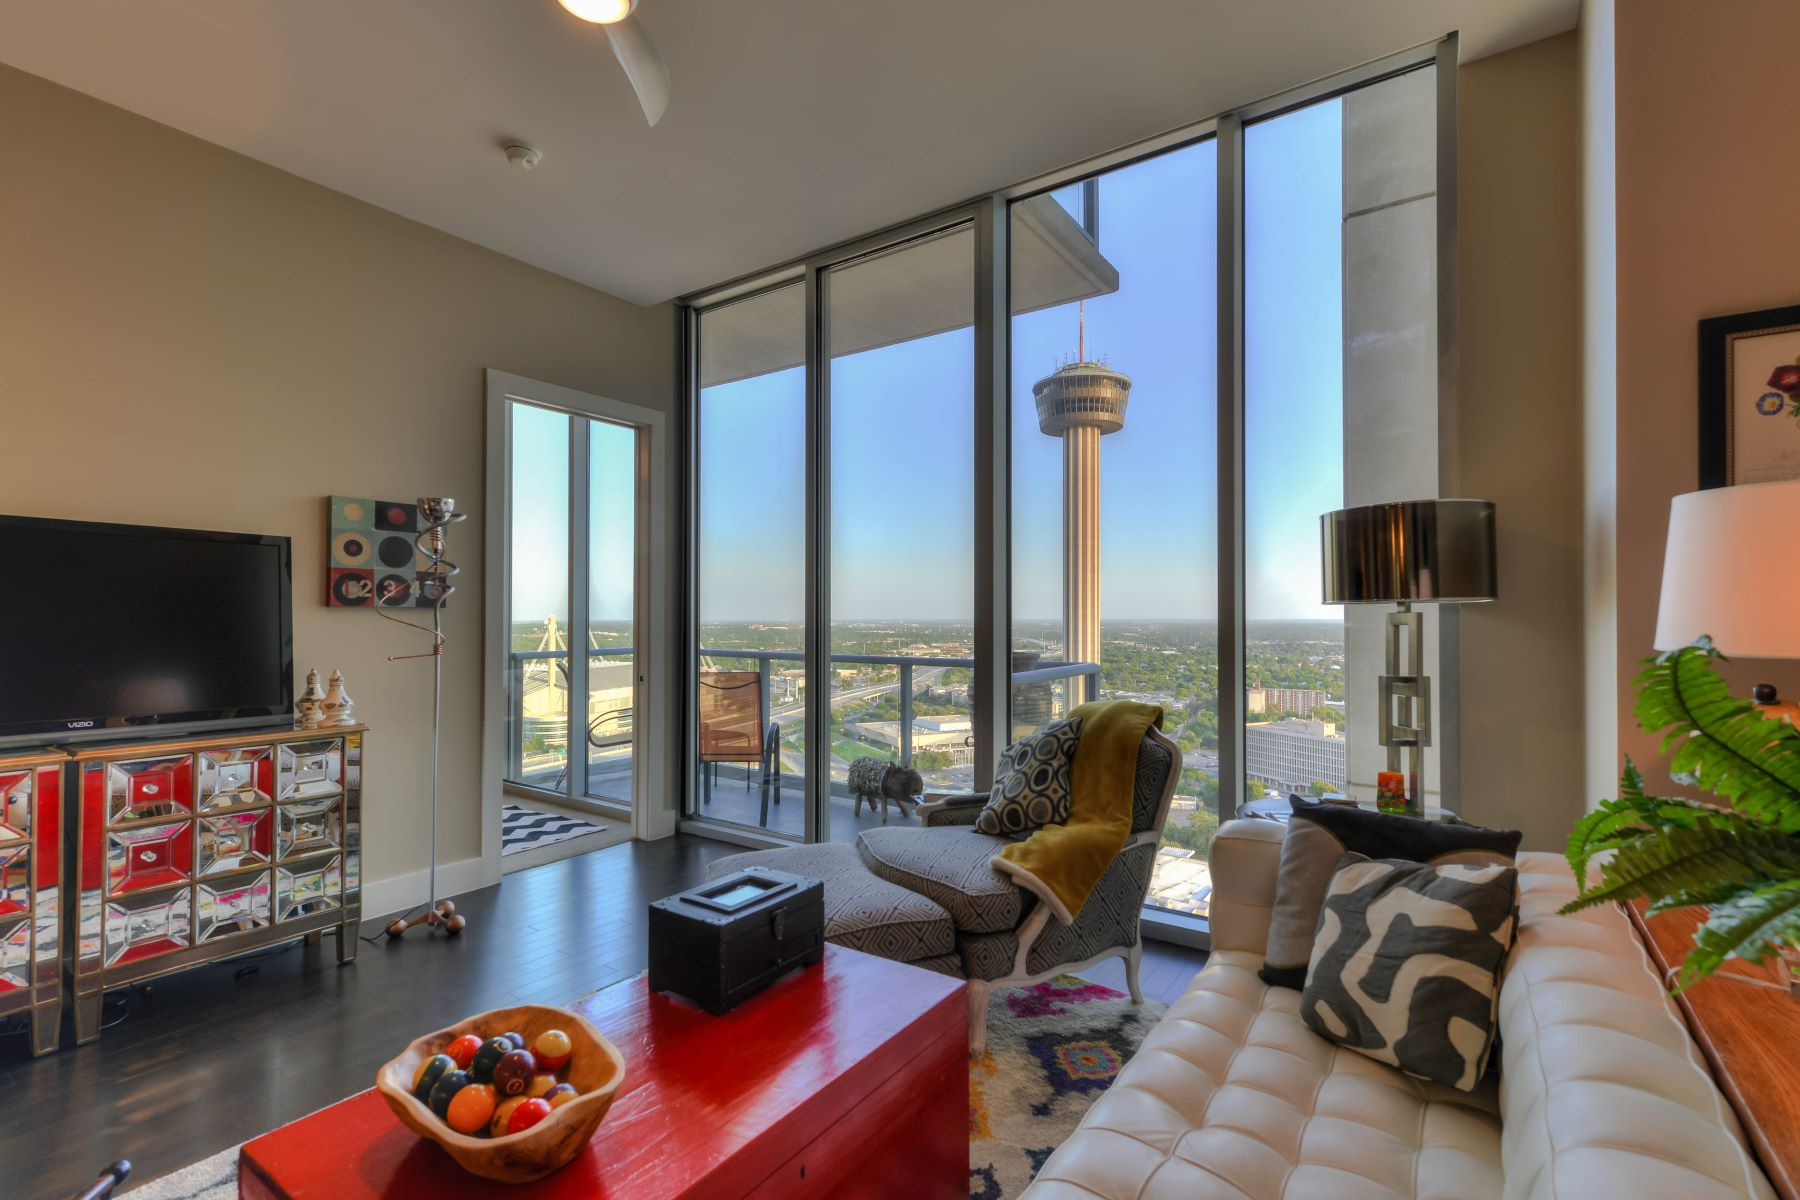 Condominium for Rent at Luxury Downtown Living At Alteza 610 E Market St 2809 San Antonio, Texas 78205 United States